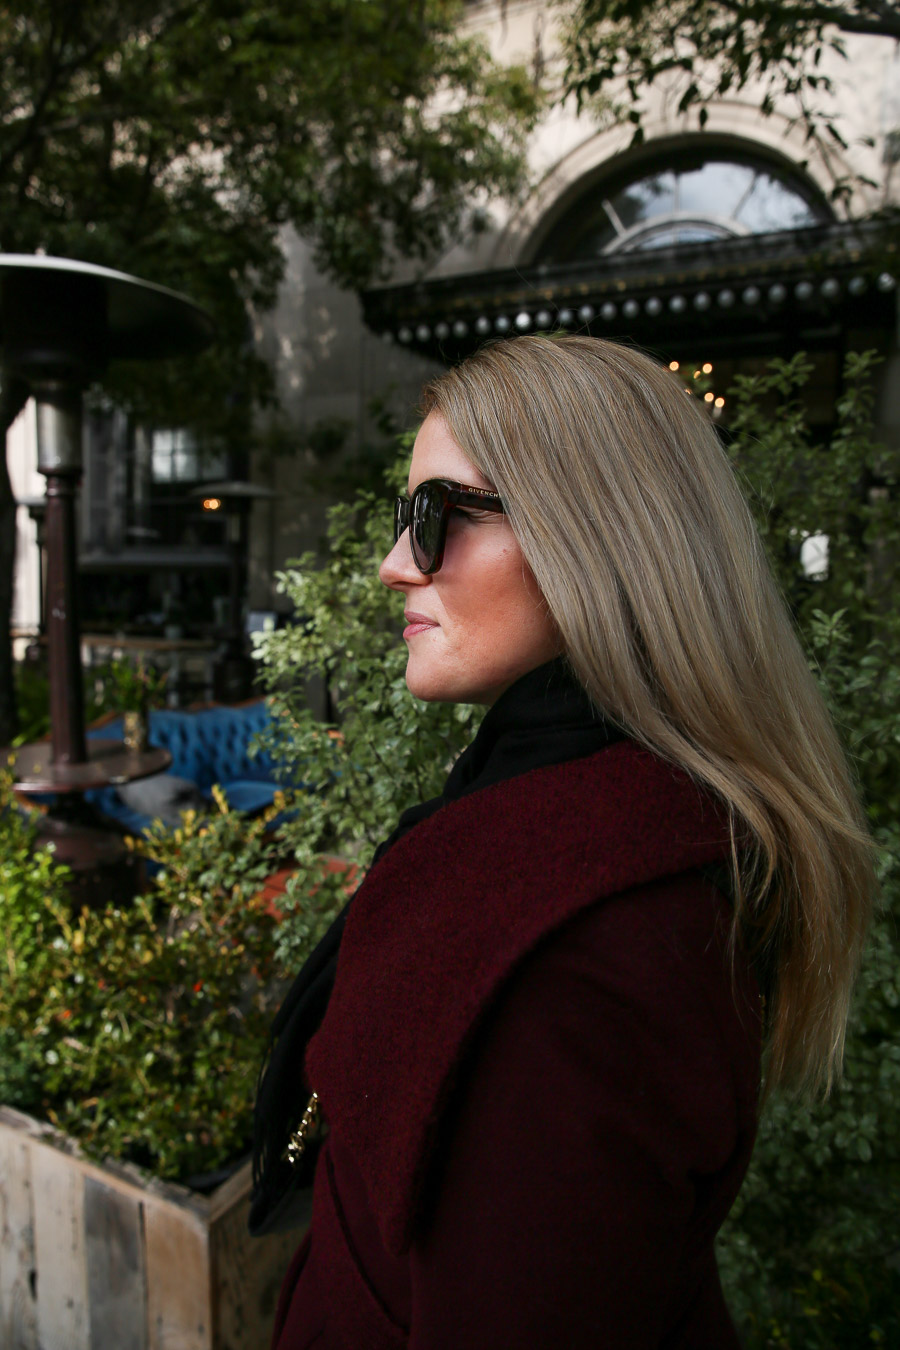 Burgundy Coat Outfit - Second Trimester Fall/Winter Outfit